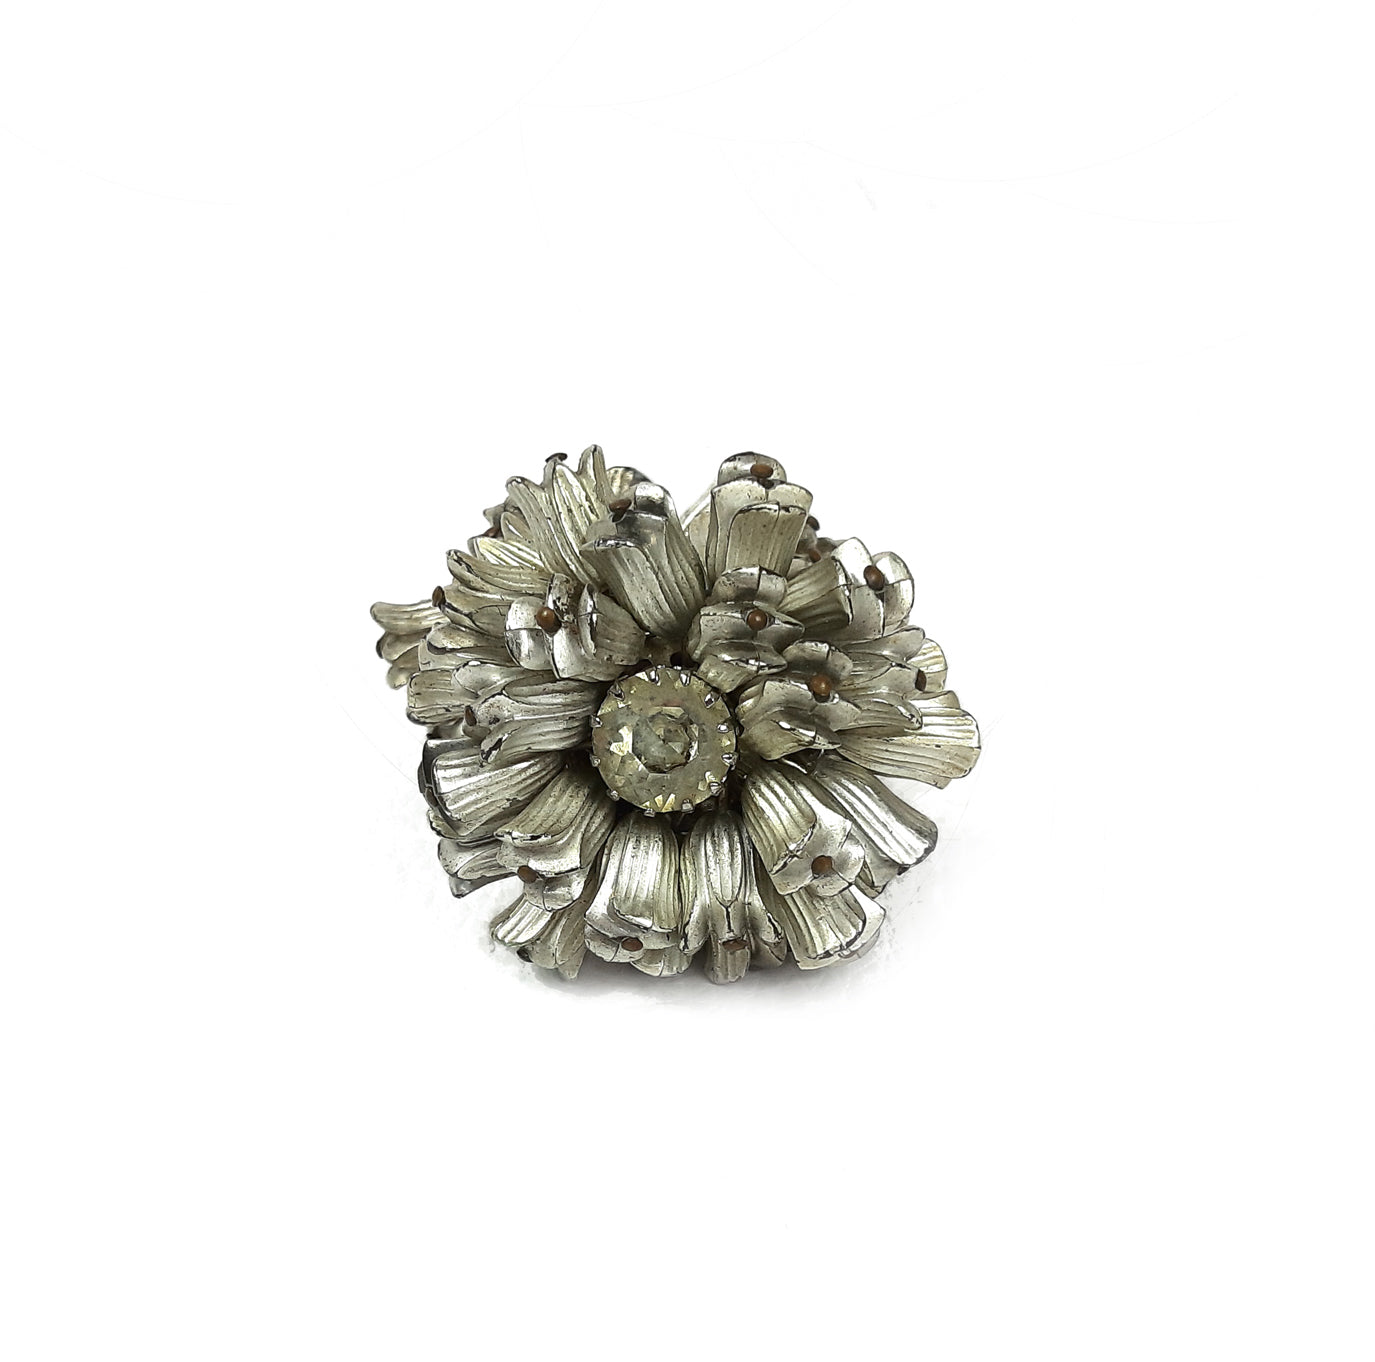 VINTAGE Earrings Flower Shaped in Grey/Silver with a White/Clear Gemstone